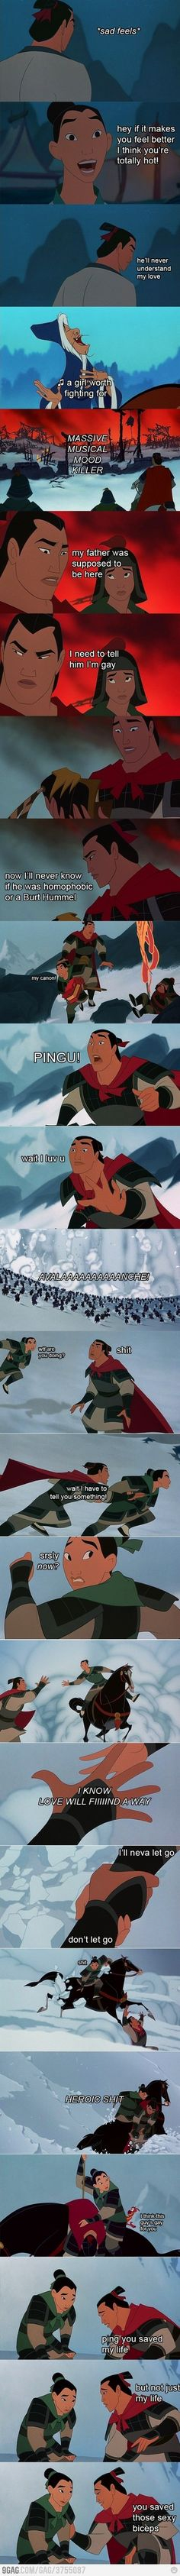 I Gay? Self-discovery with Shang. Part II Am I Gay? Self-discovery with Shang. Part IIAm I Gay? Self-discovery with Shang. Part II<br> Disney And Dreamworks, Disney Pixar, Walt Disney, Disney Princes, Disney Animation, Disney Jokes, Funny Disney, Disney Facts, Disney Marvel